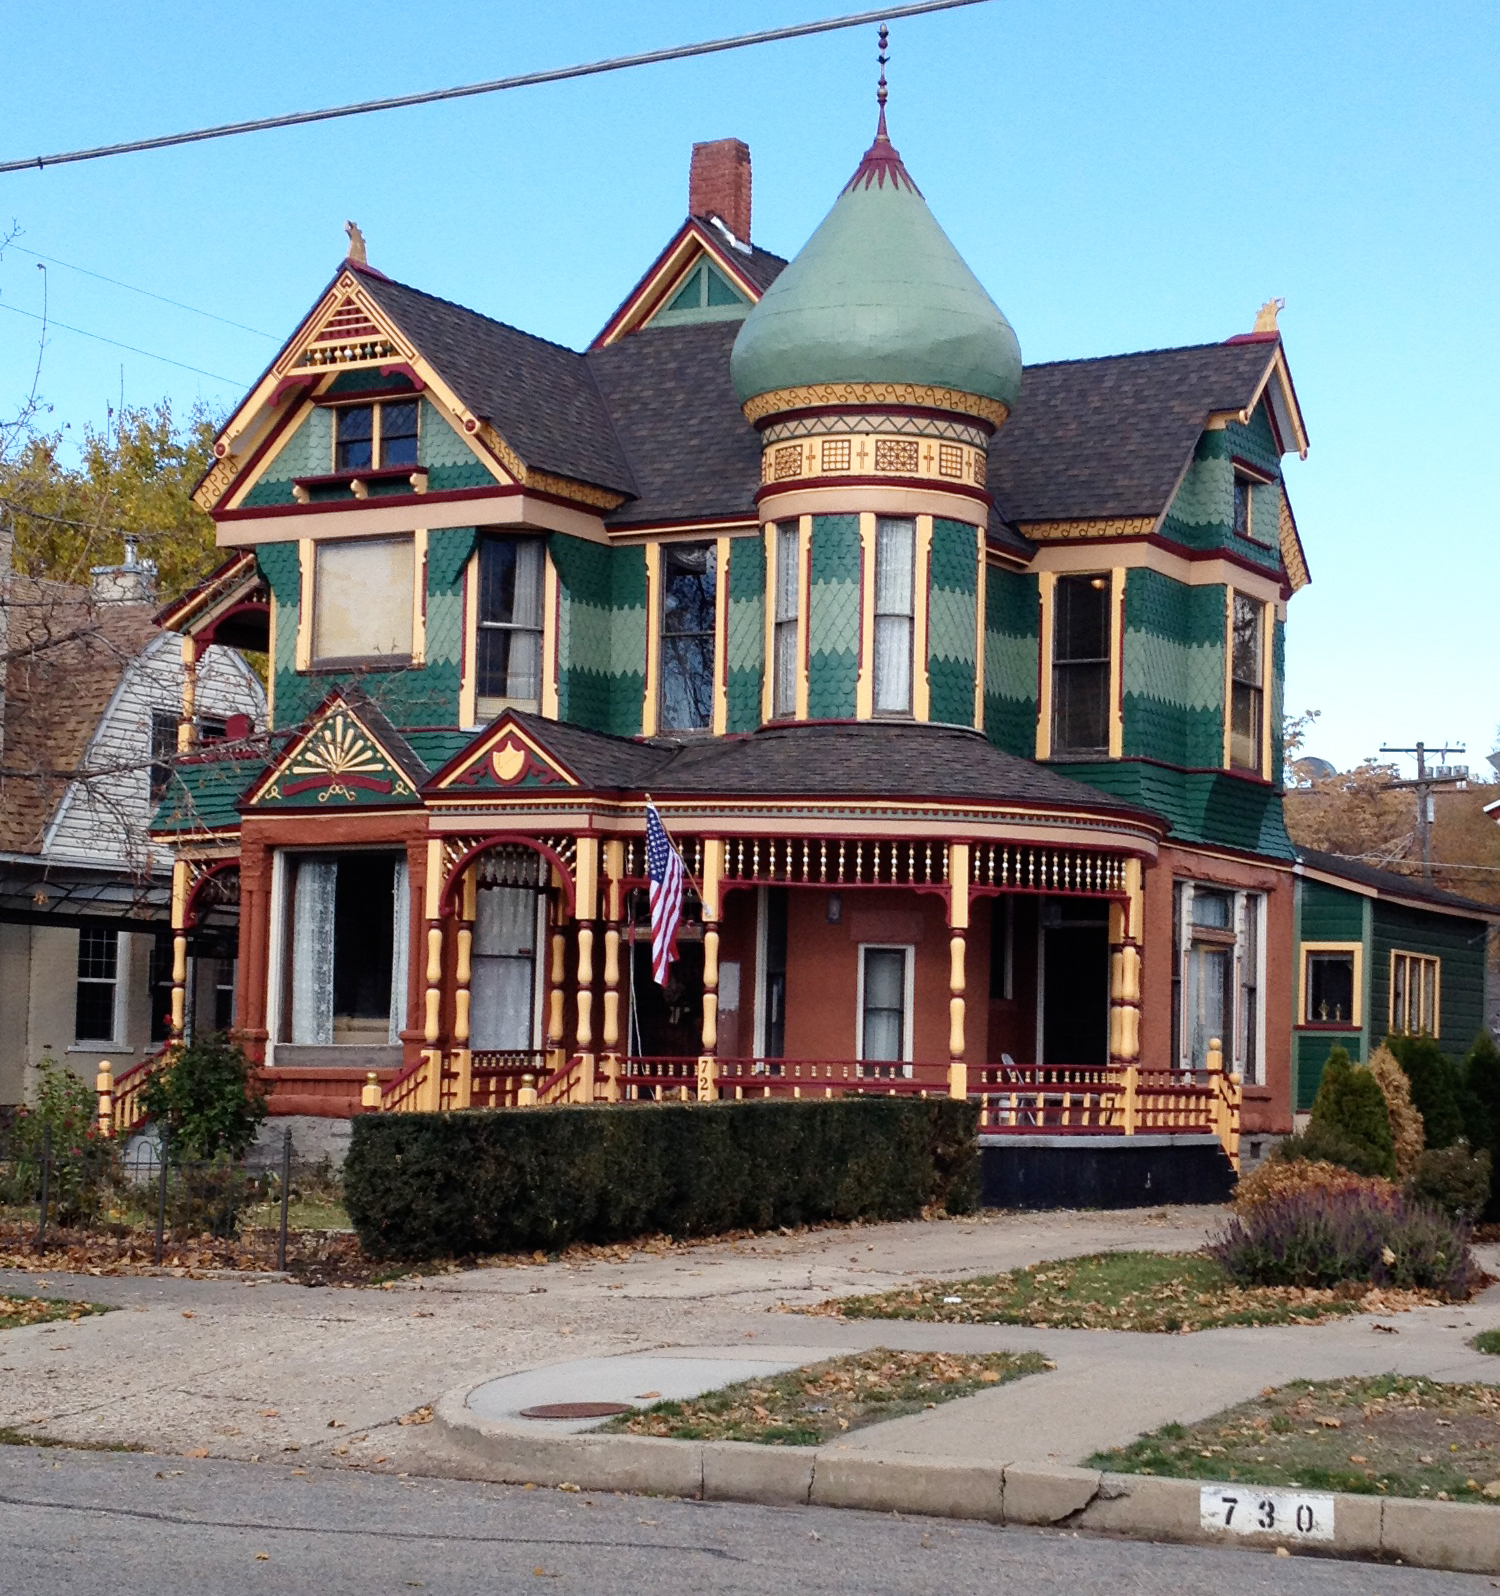 25th St Ogden Washington Blvd Historic Victorian